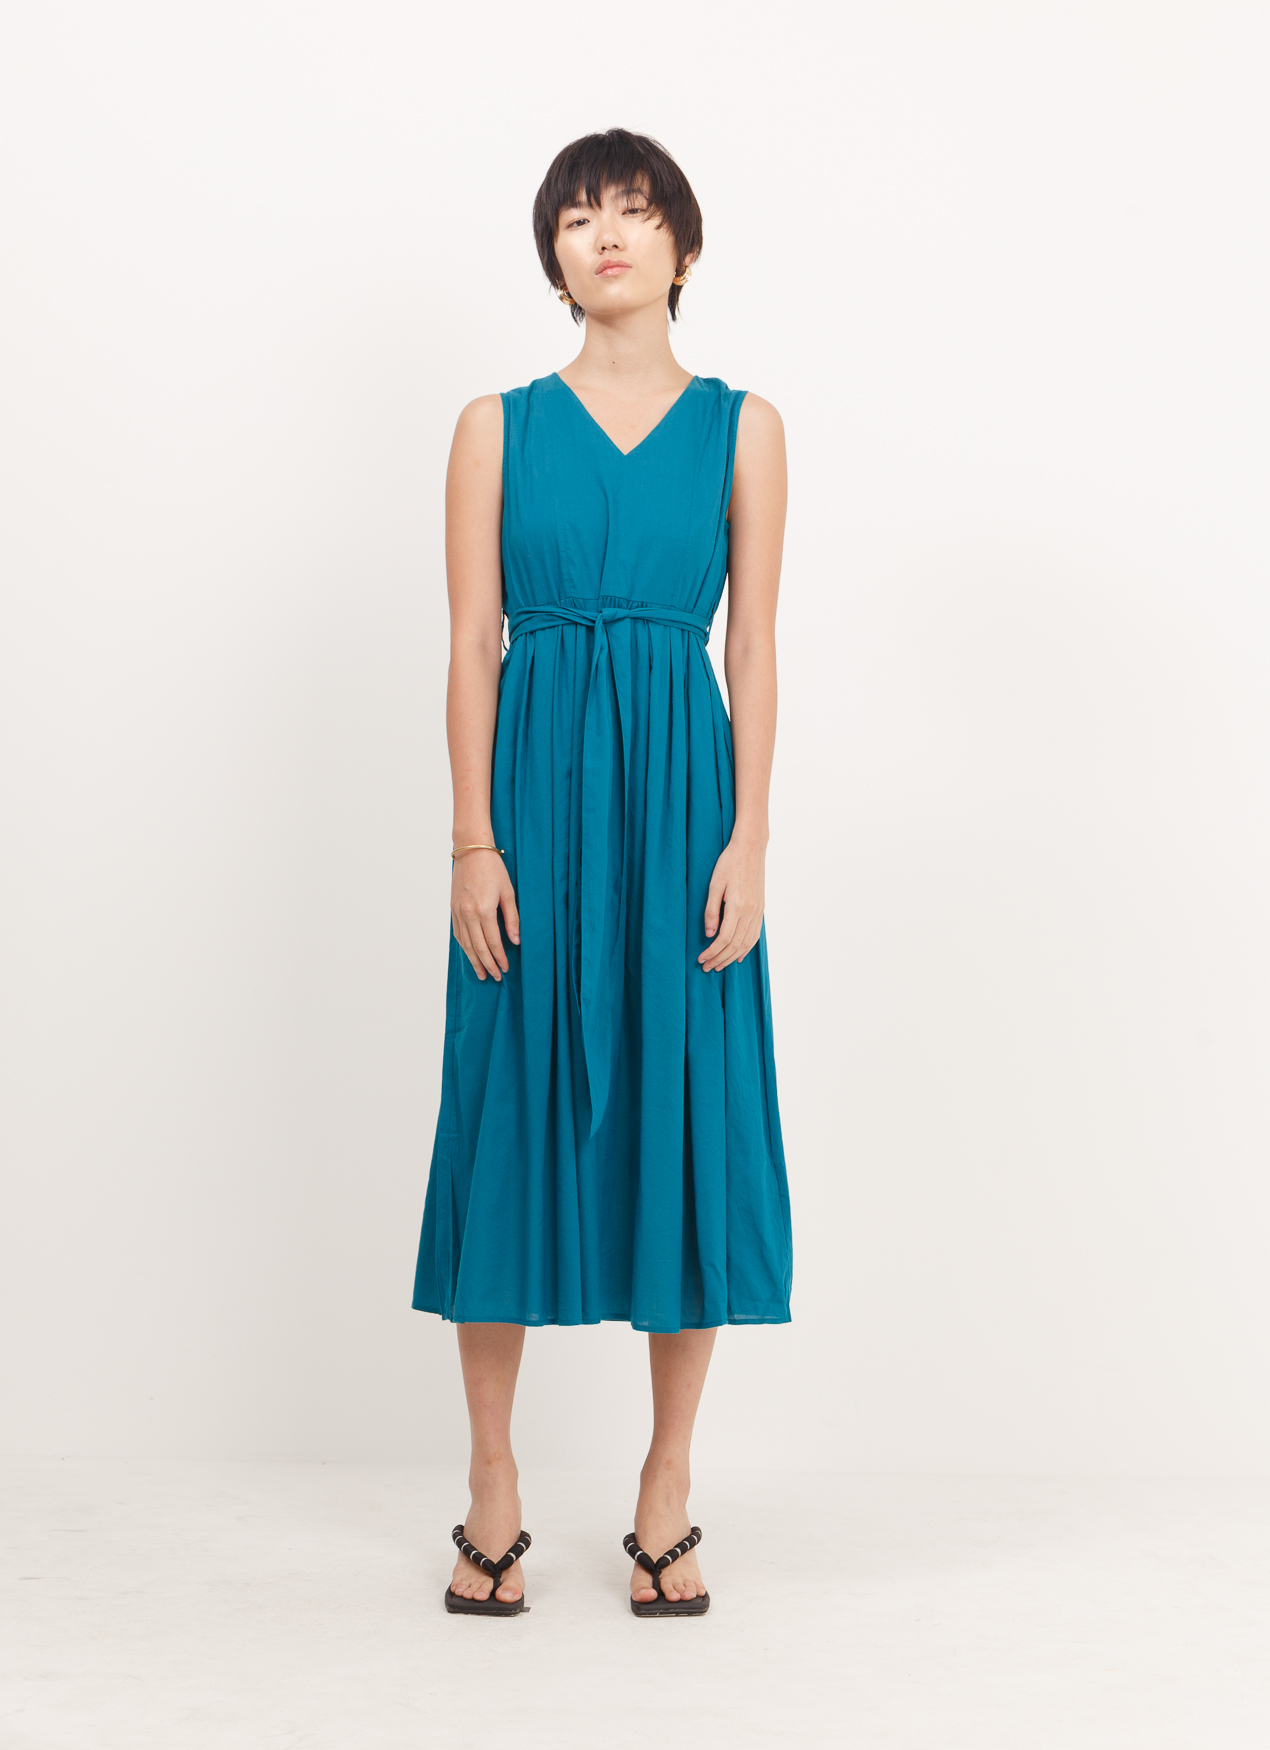 American Holic Felice Dress - Turquoise Blue